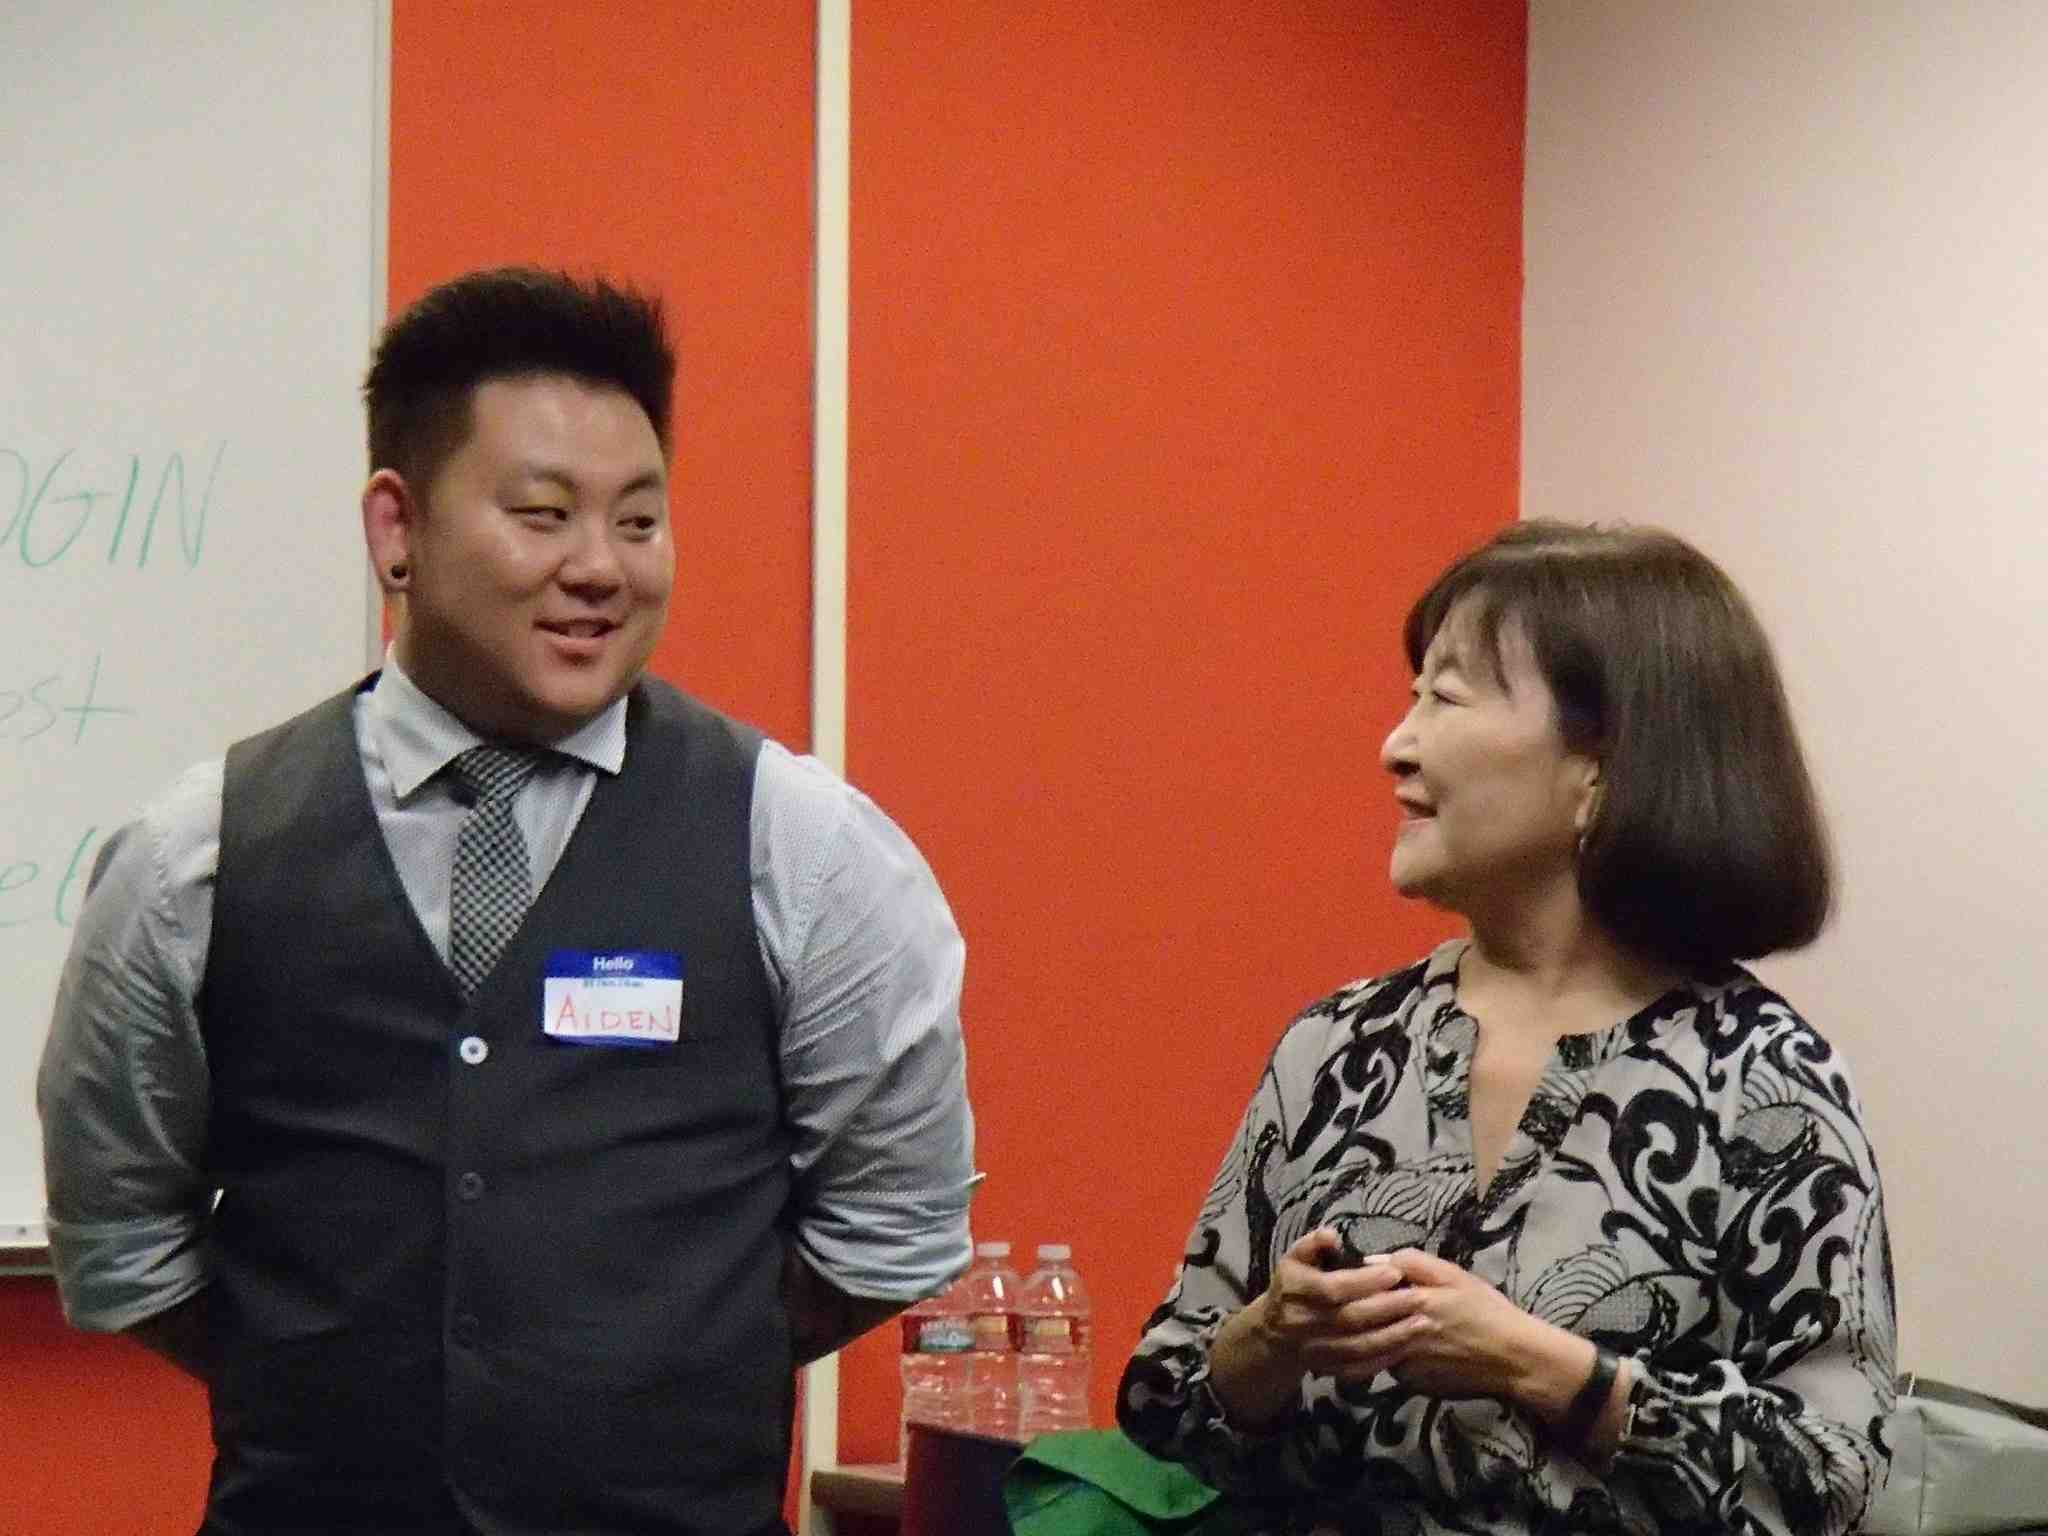 Aiden and Marsha Aizumi speaking at the API LGBTQ Gathering in Seattle.